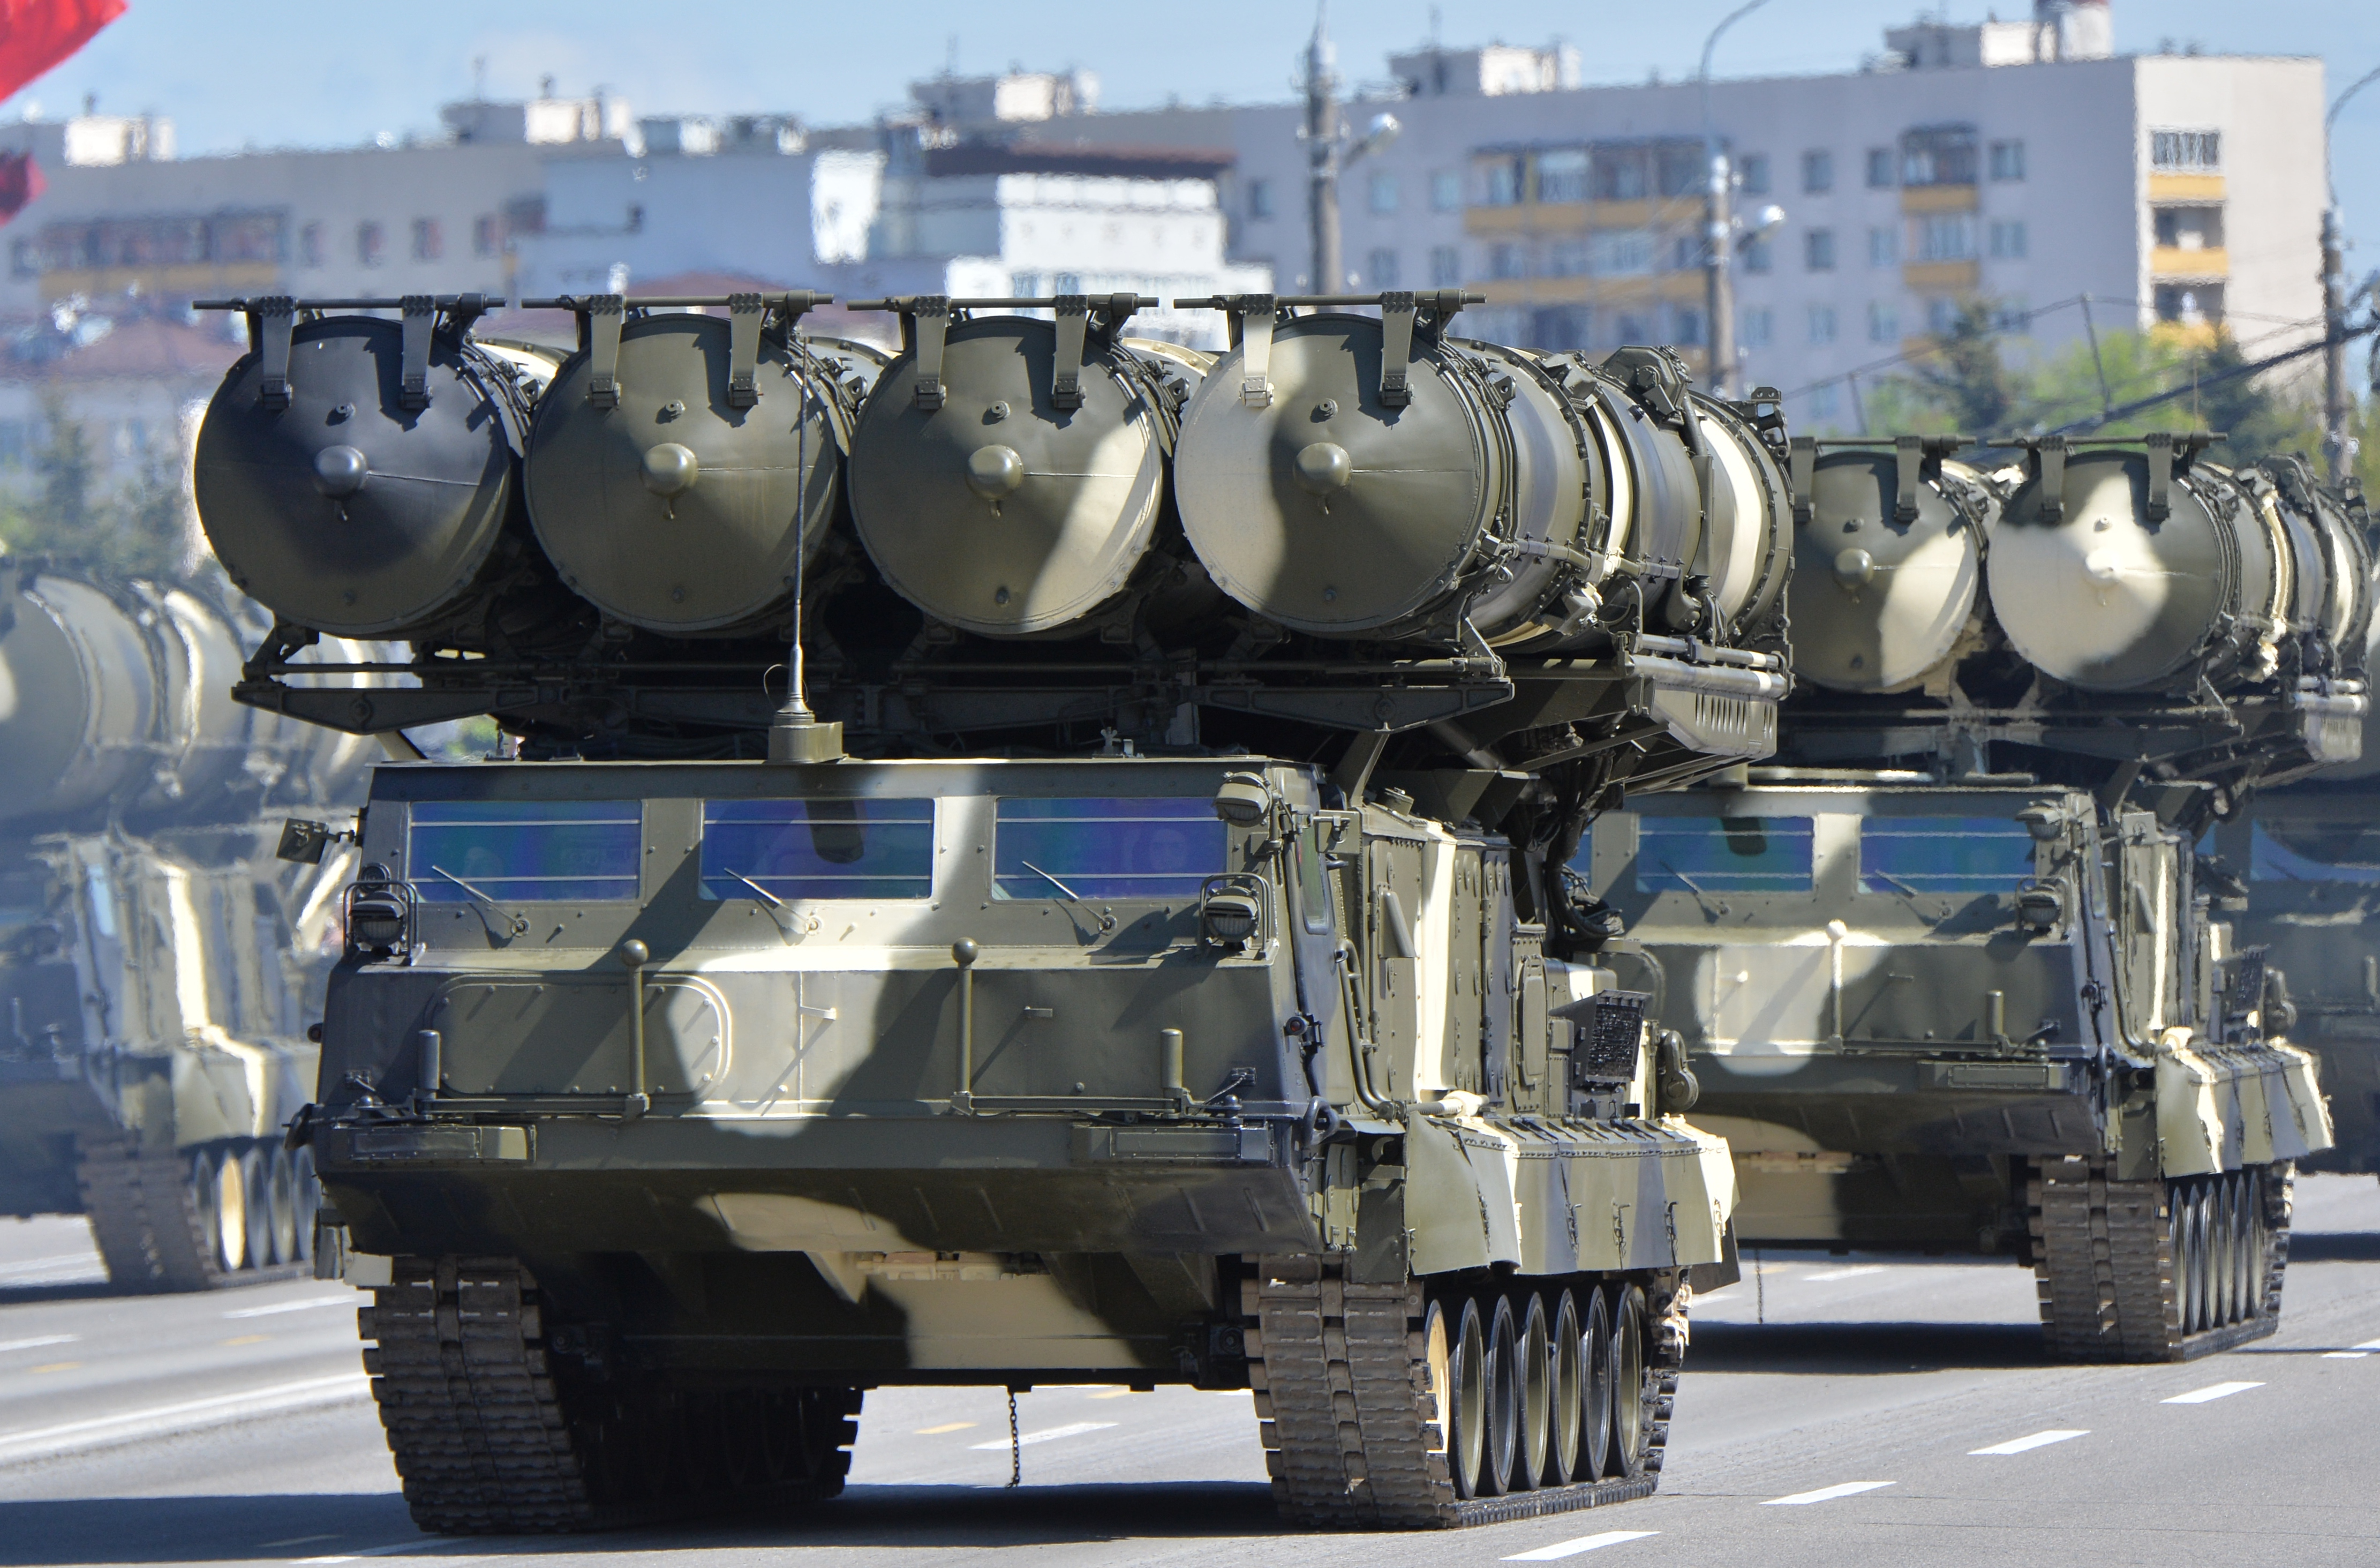 S-300 long-range surface-to-air missile systems are on display during a celebration on May 9, 2015, in Minsk, Russia. (Host photo agency/RIA Novosti via Getty Images)